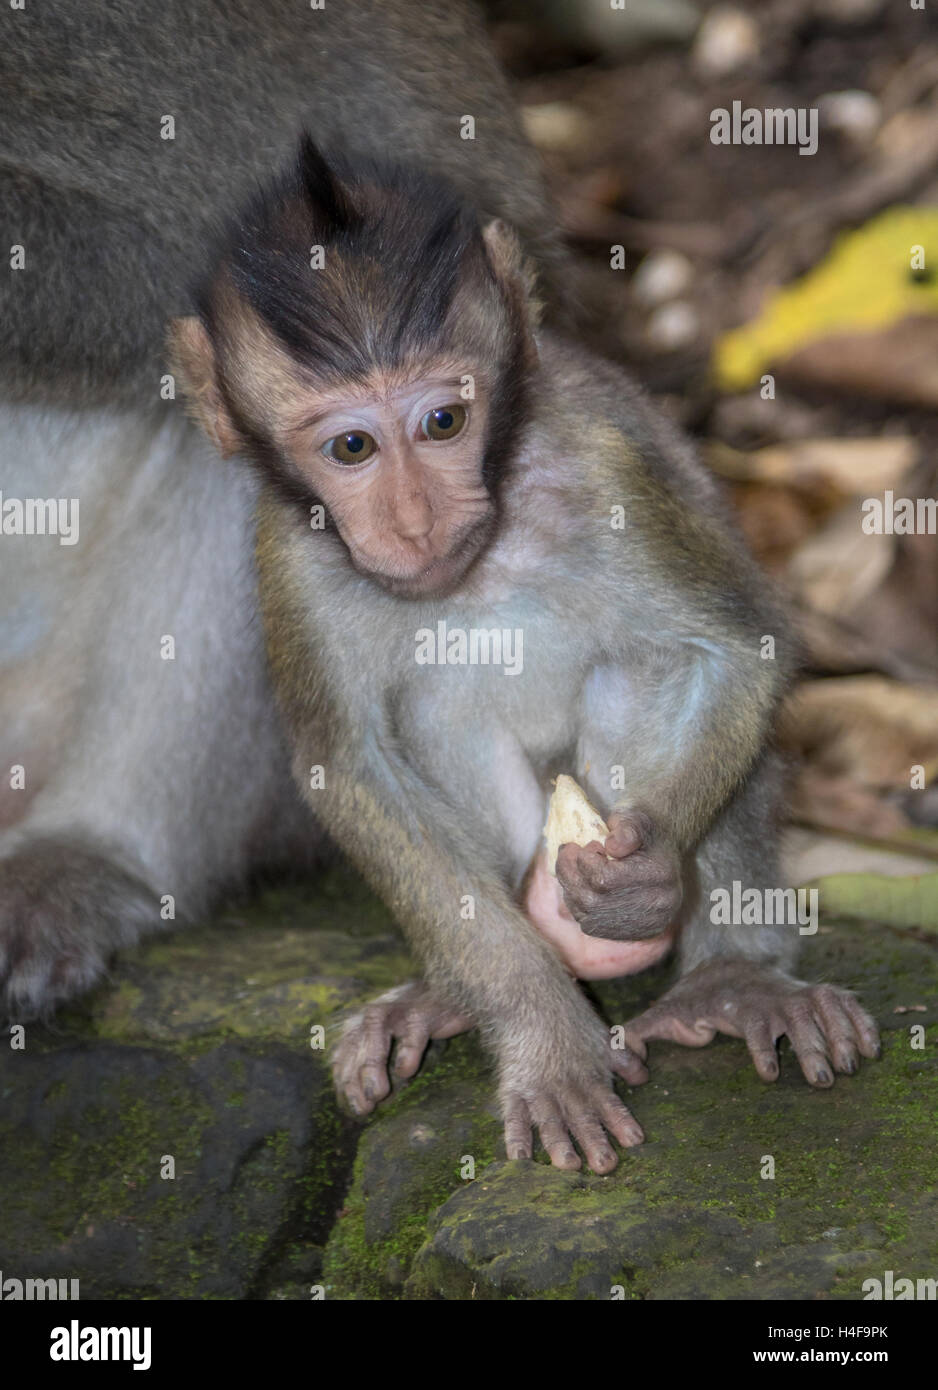 A young Balinese Long-Tailed Monkey in the Ubud Monkey forest in Bali, Indonesia. - Stock Image